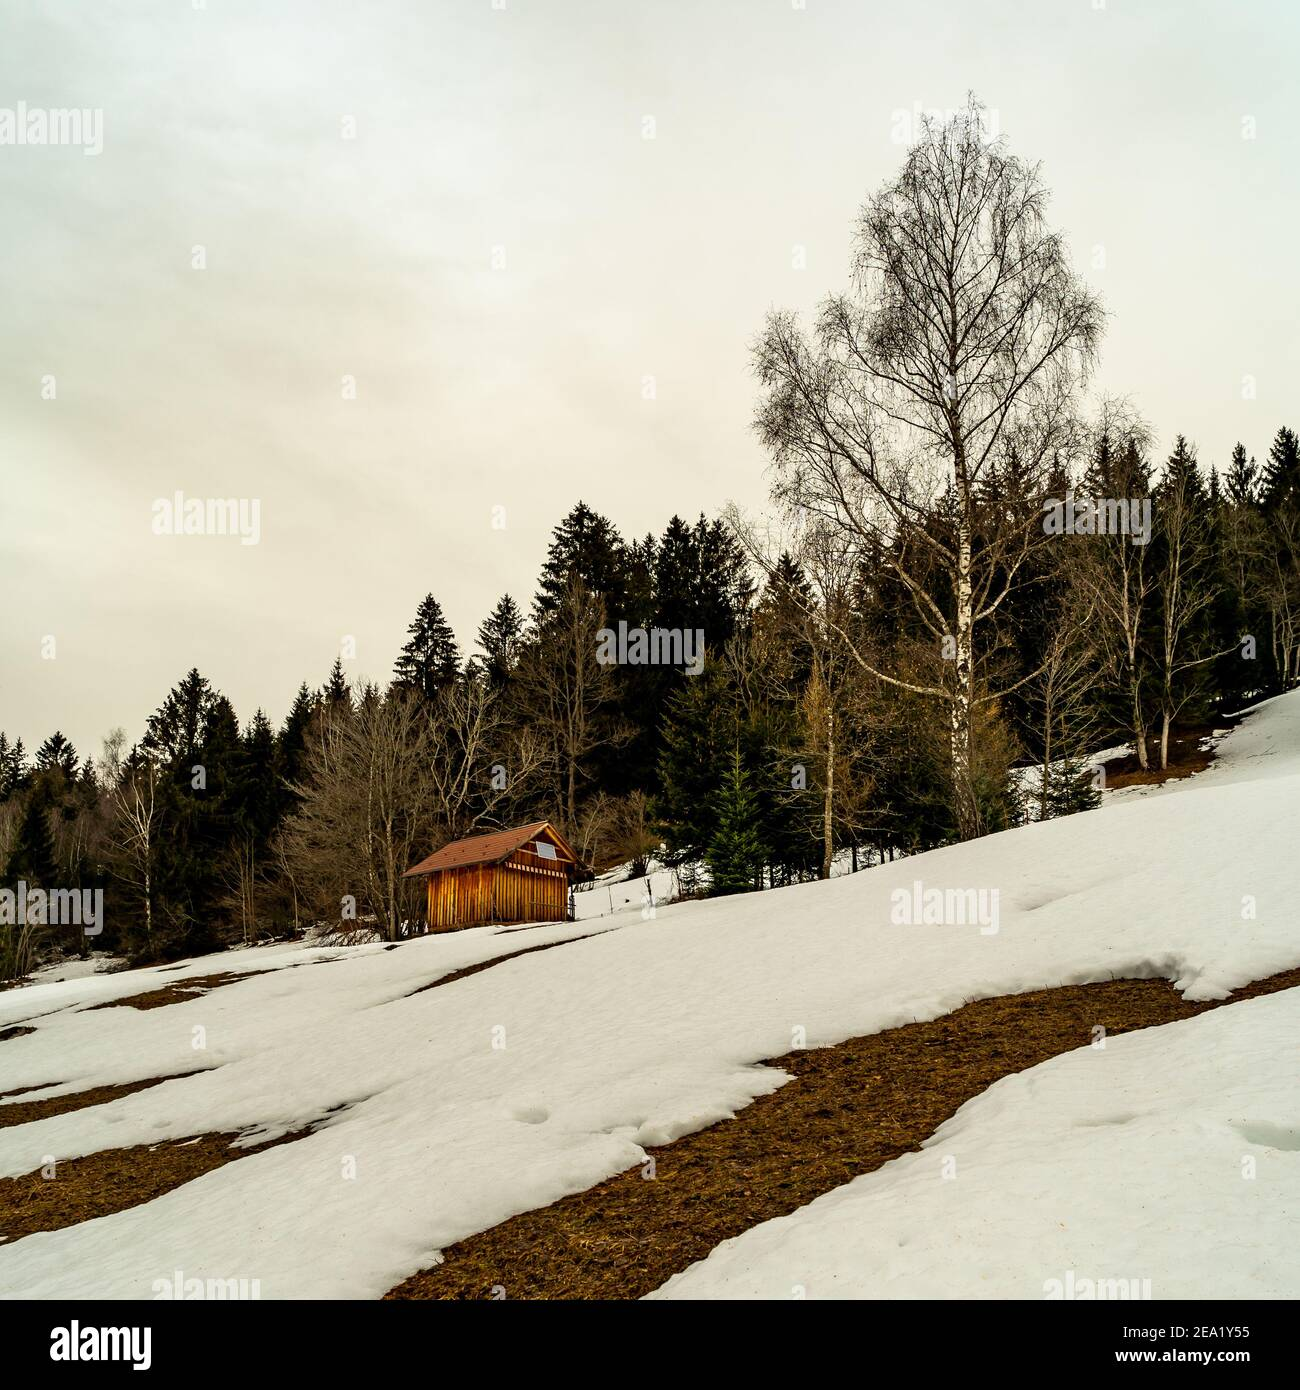 snowy field with trees and barn on the high moor. snow covered slope and Sahara sand in the air. offene Schneefelder bei Föhn und Saharasand in Wolken Stock Photo